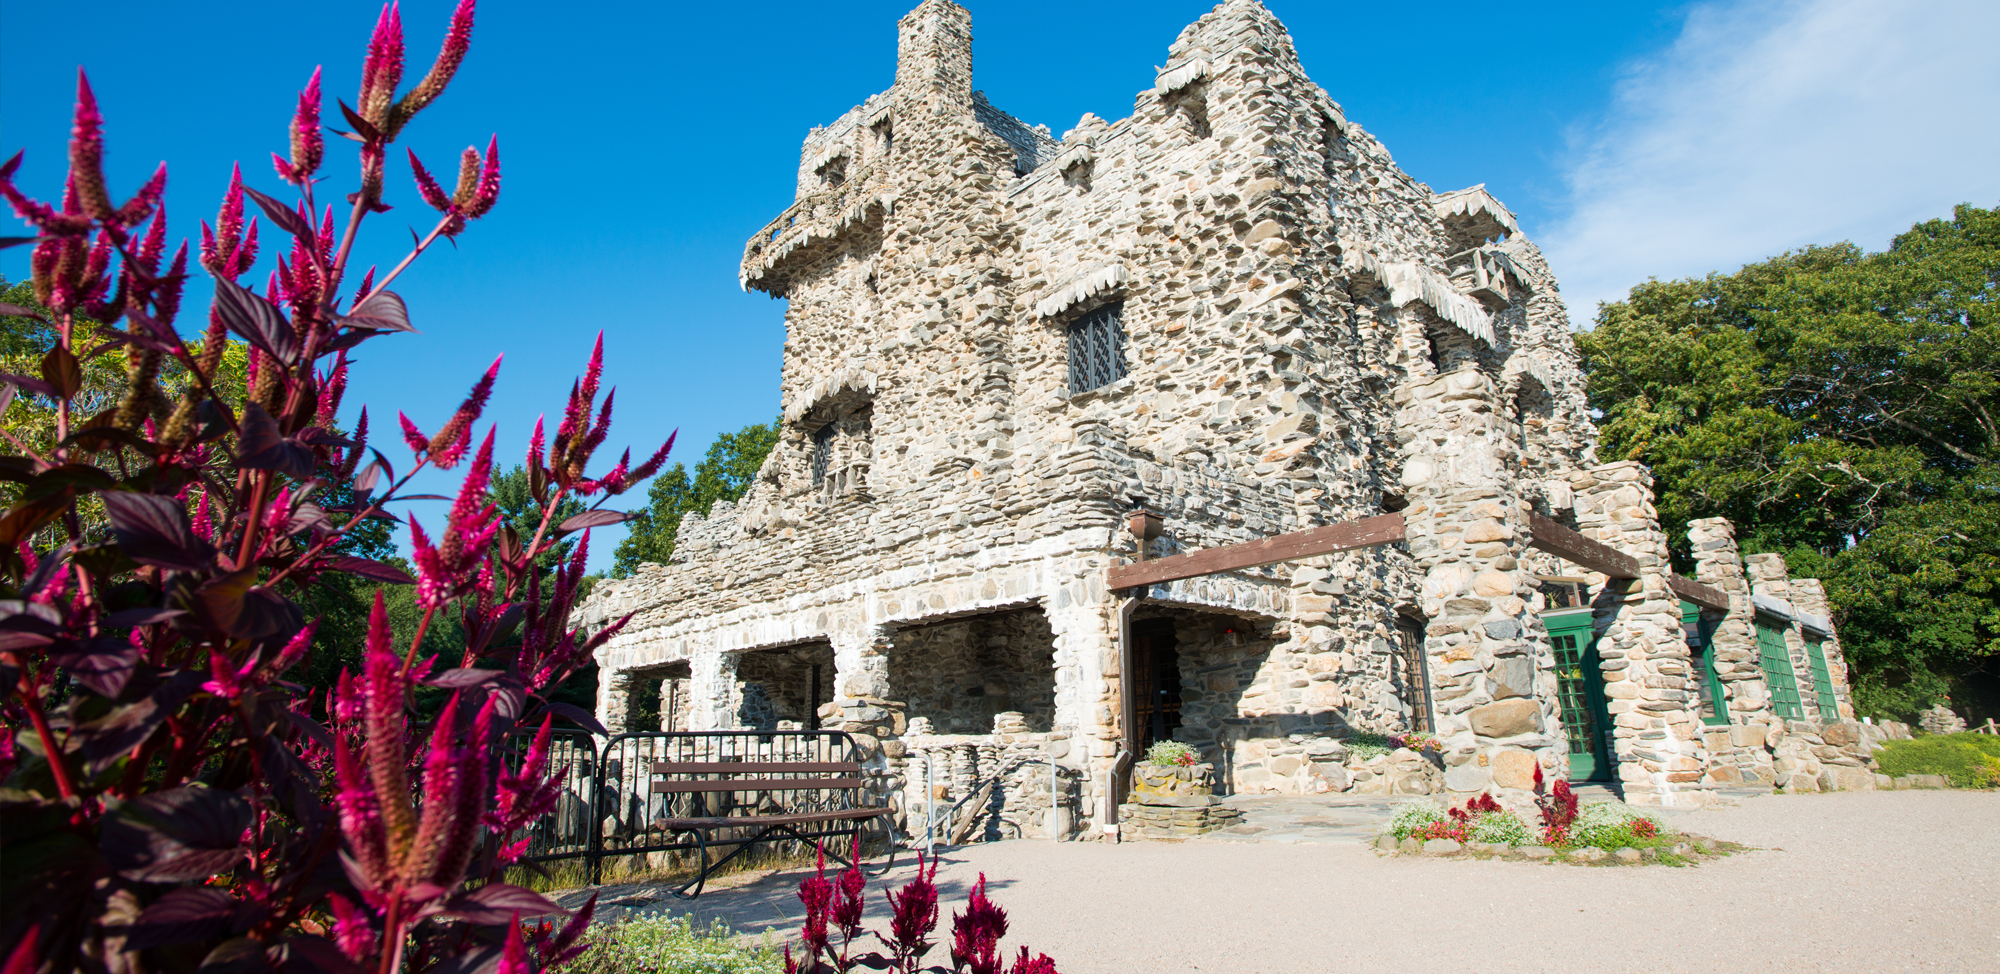 Image result for site:www.ctvisit.com/listings/gillette-castle-state-park